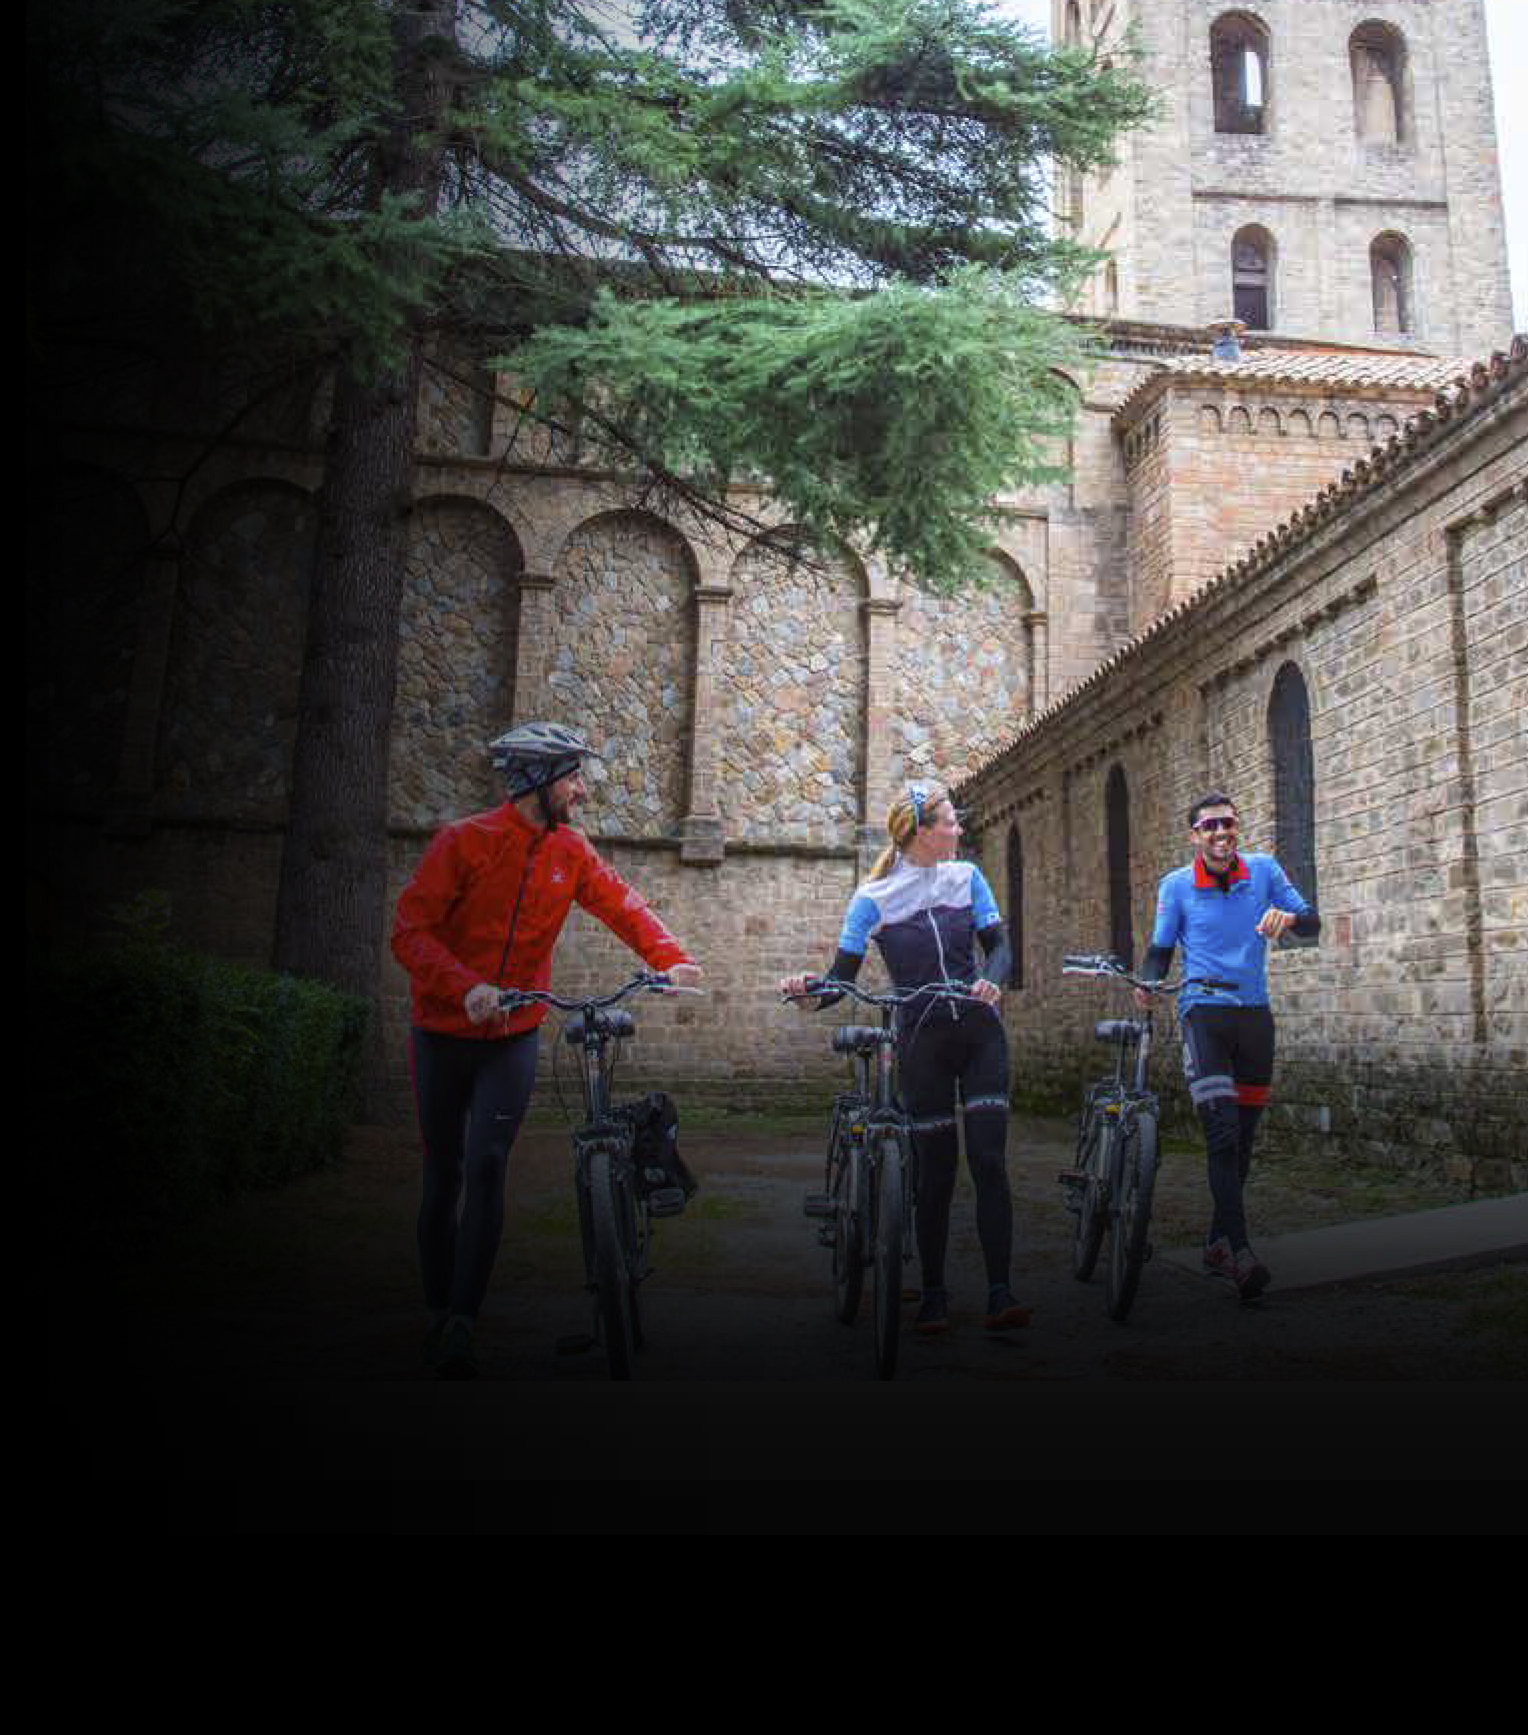 Cyclists in the monastery of Ripoll